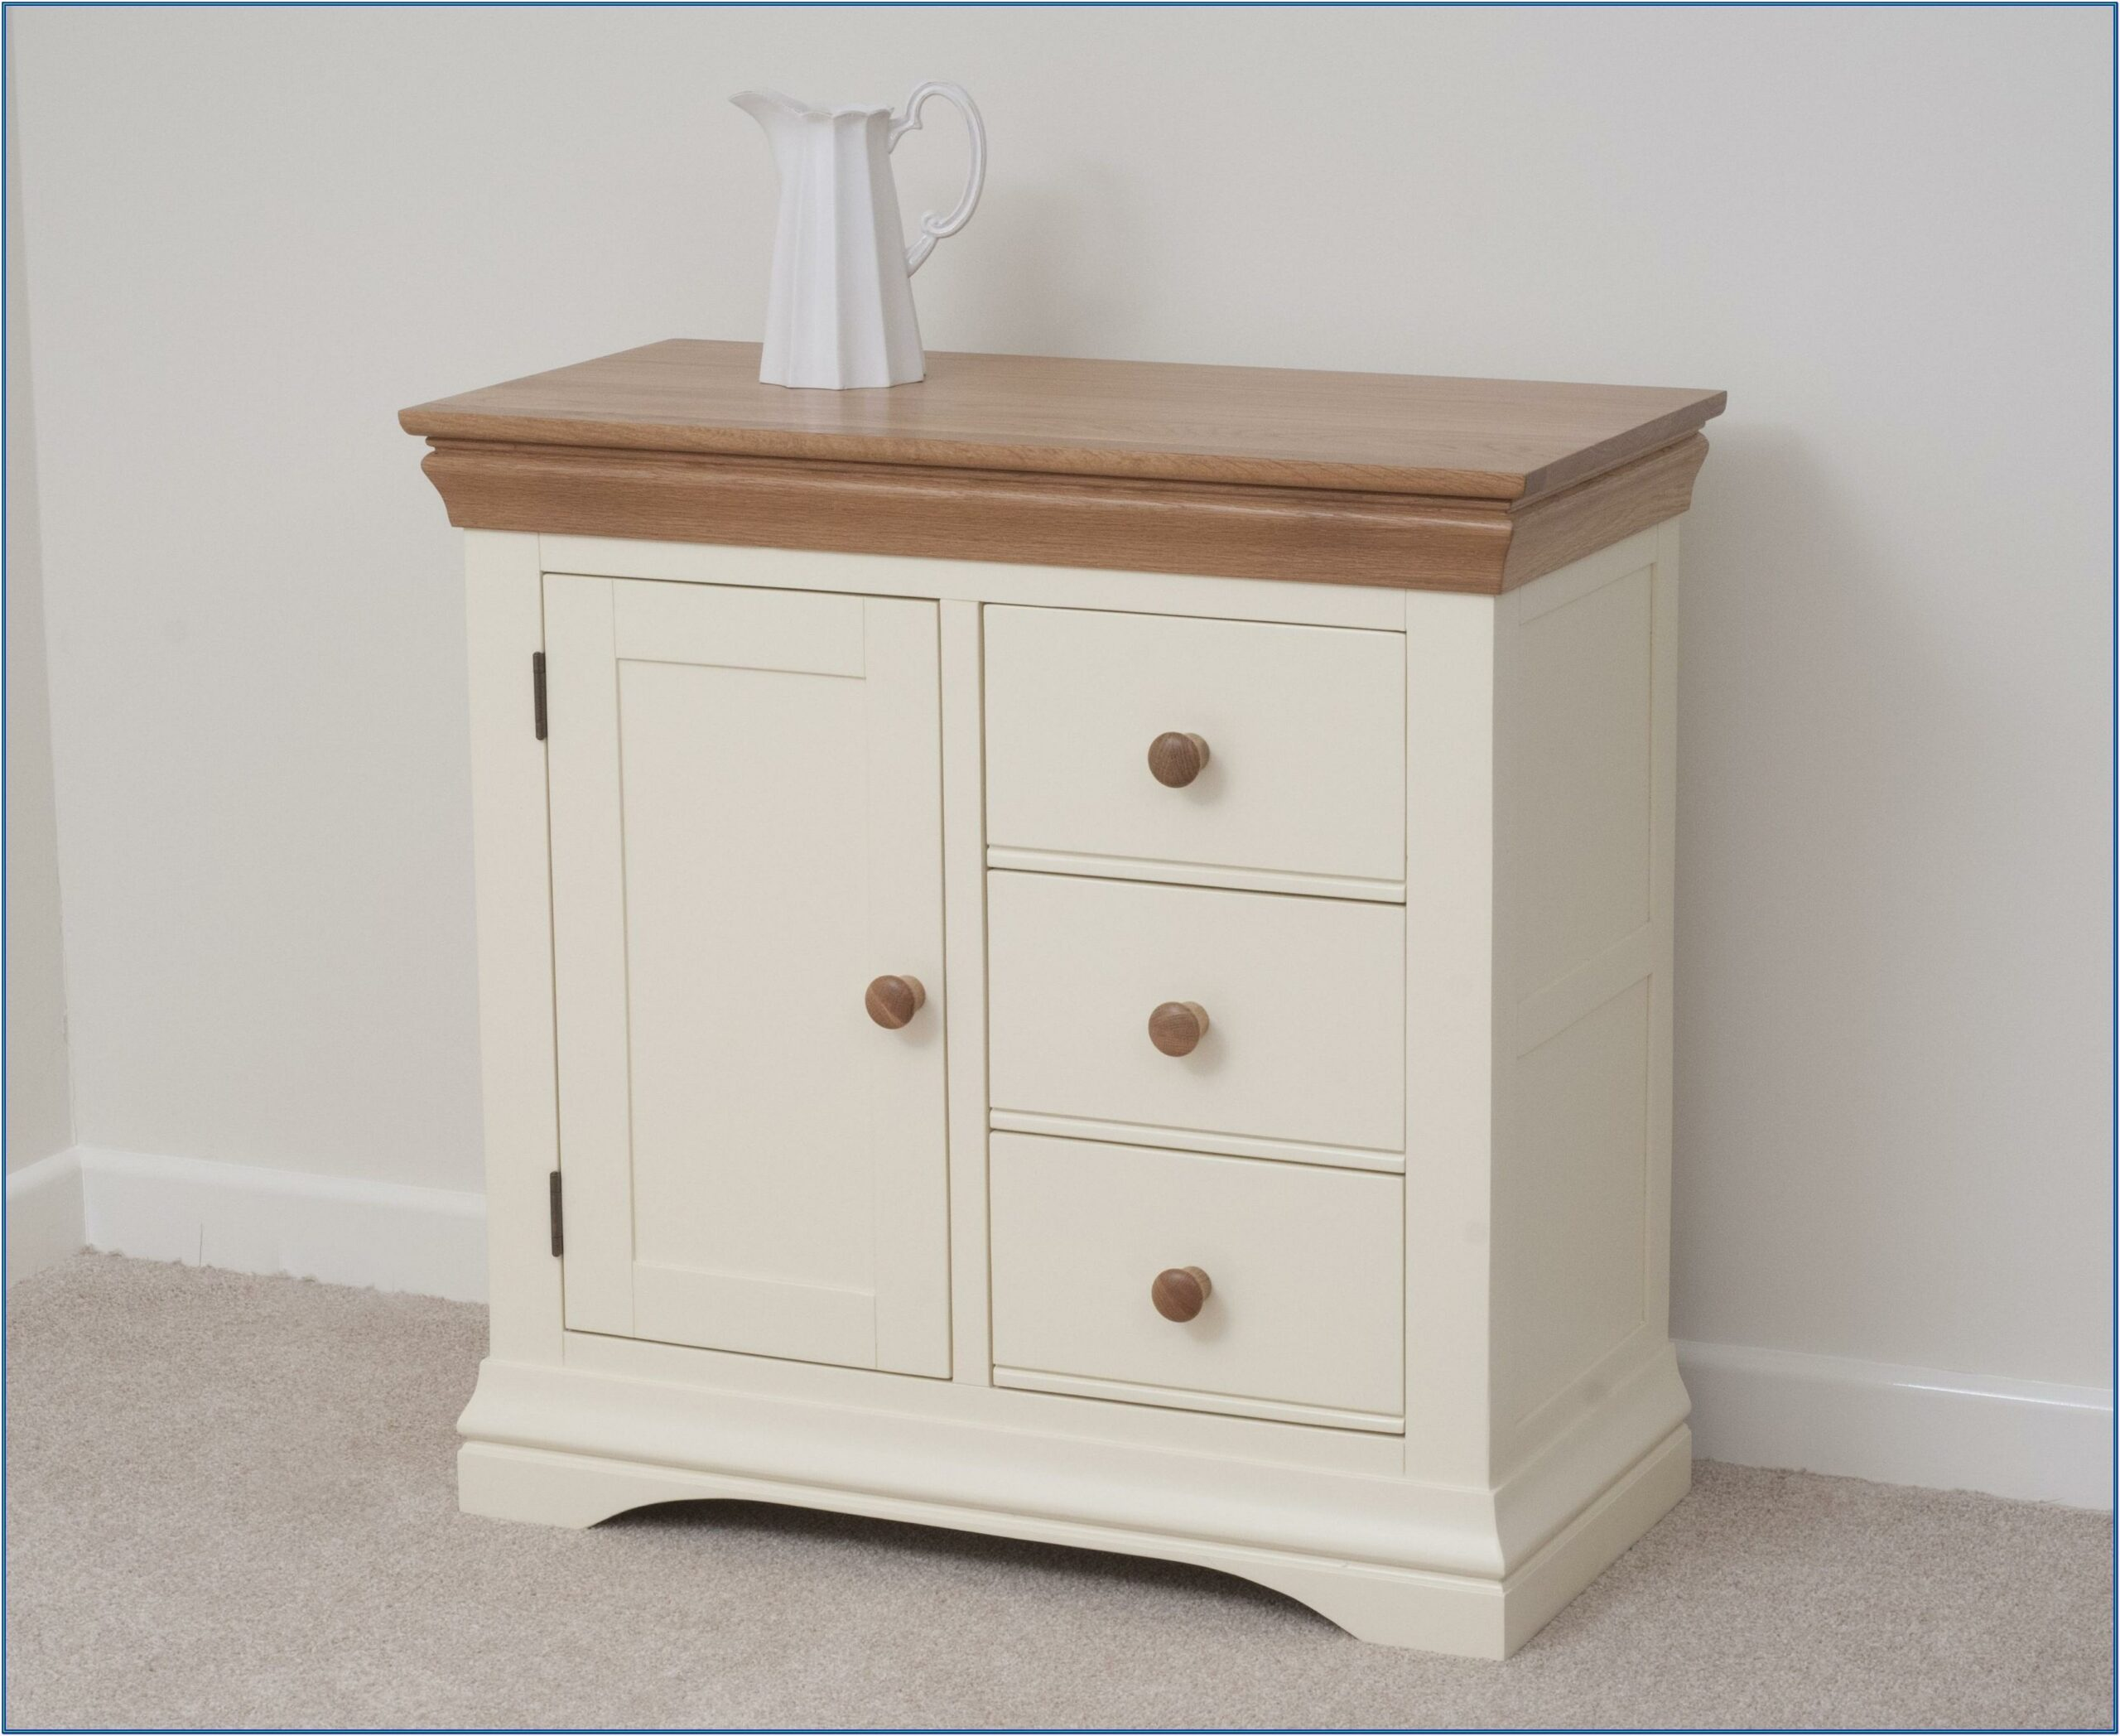 Painted Furniture Ideas Uk